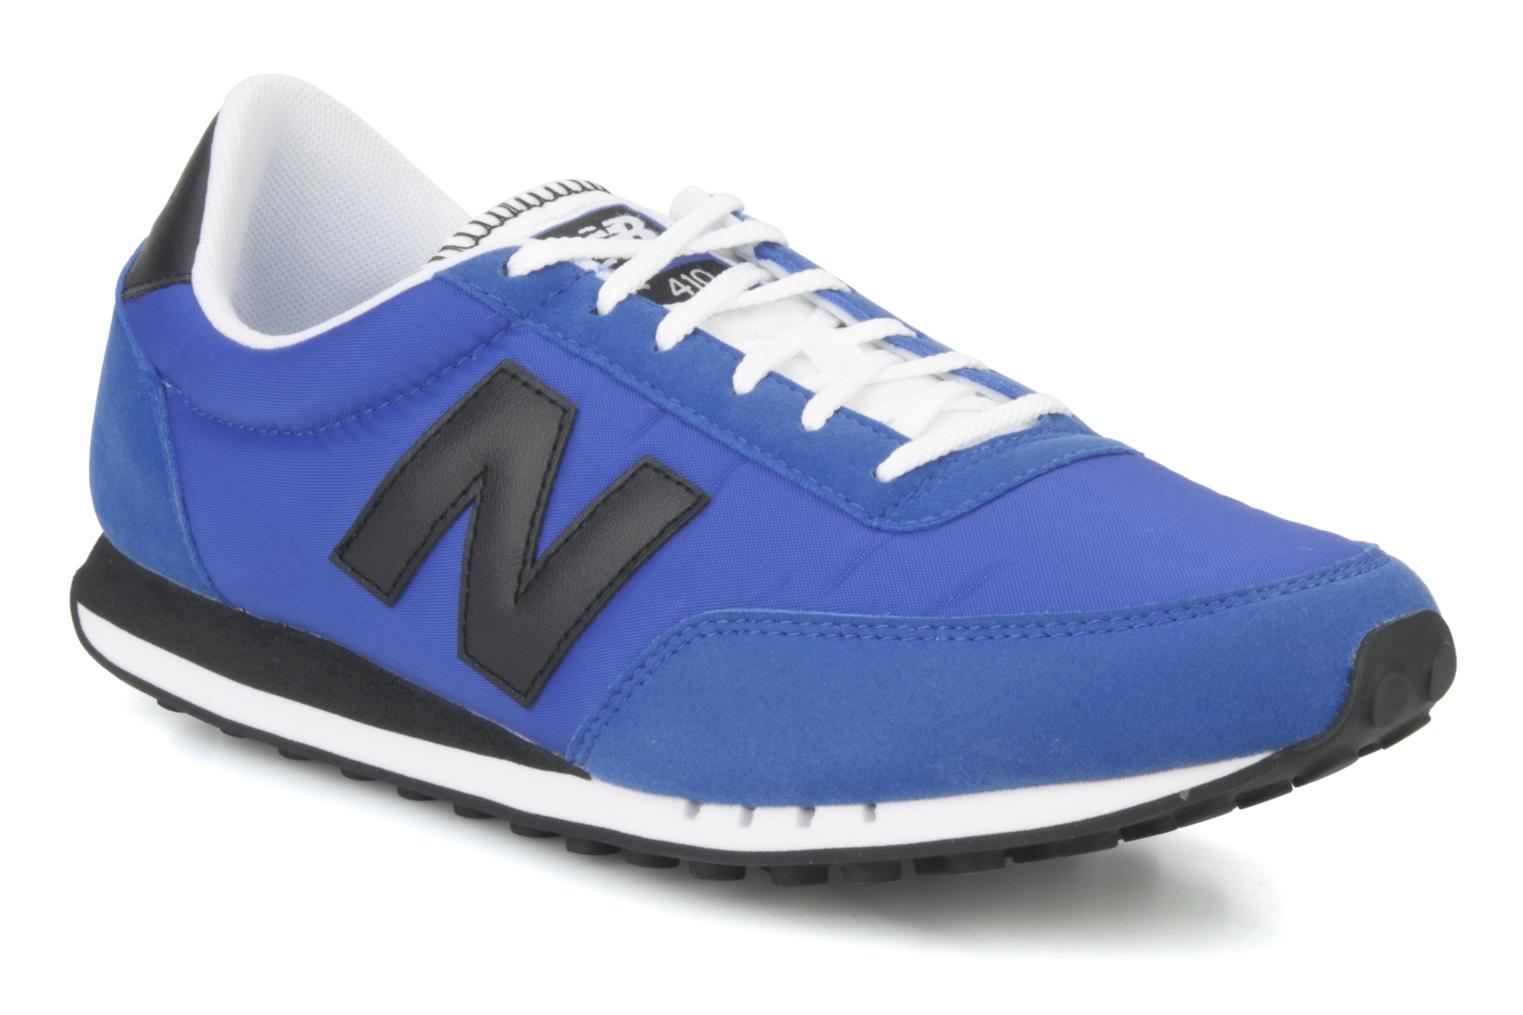 new balance u410 trainers in blue at 69932. Black Bedroom Furniture Sets. Home Design Ideas